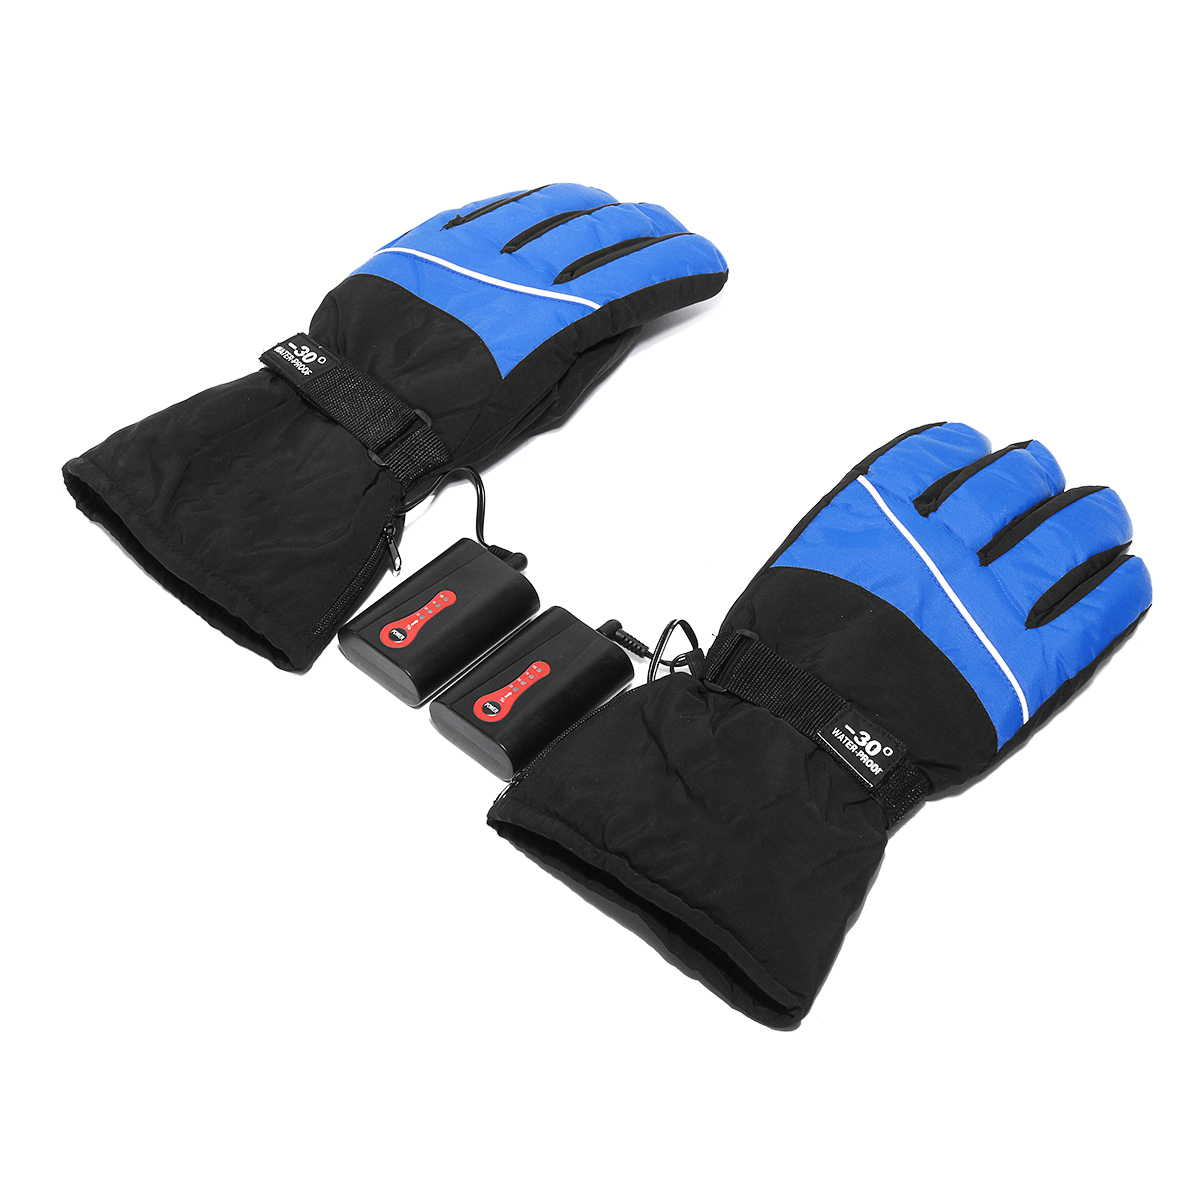 5000mah Electric Heated Gloves Motorcycle Winter Warmer Outdoor Skiing